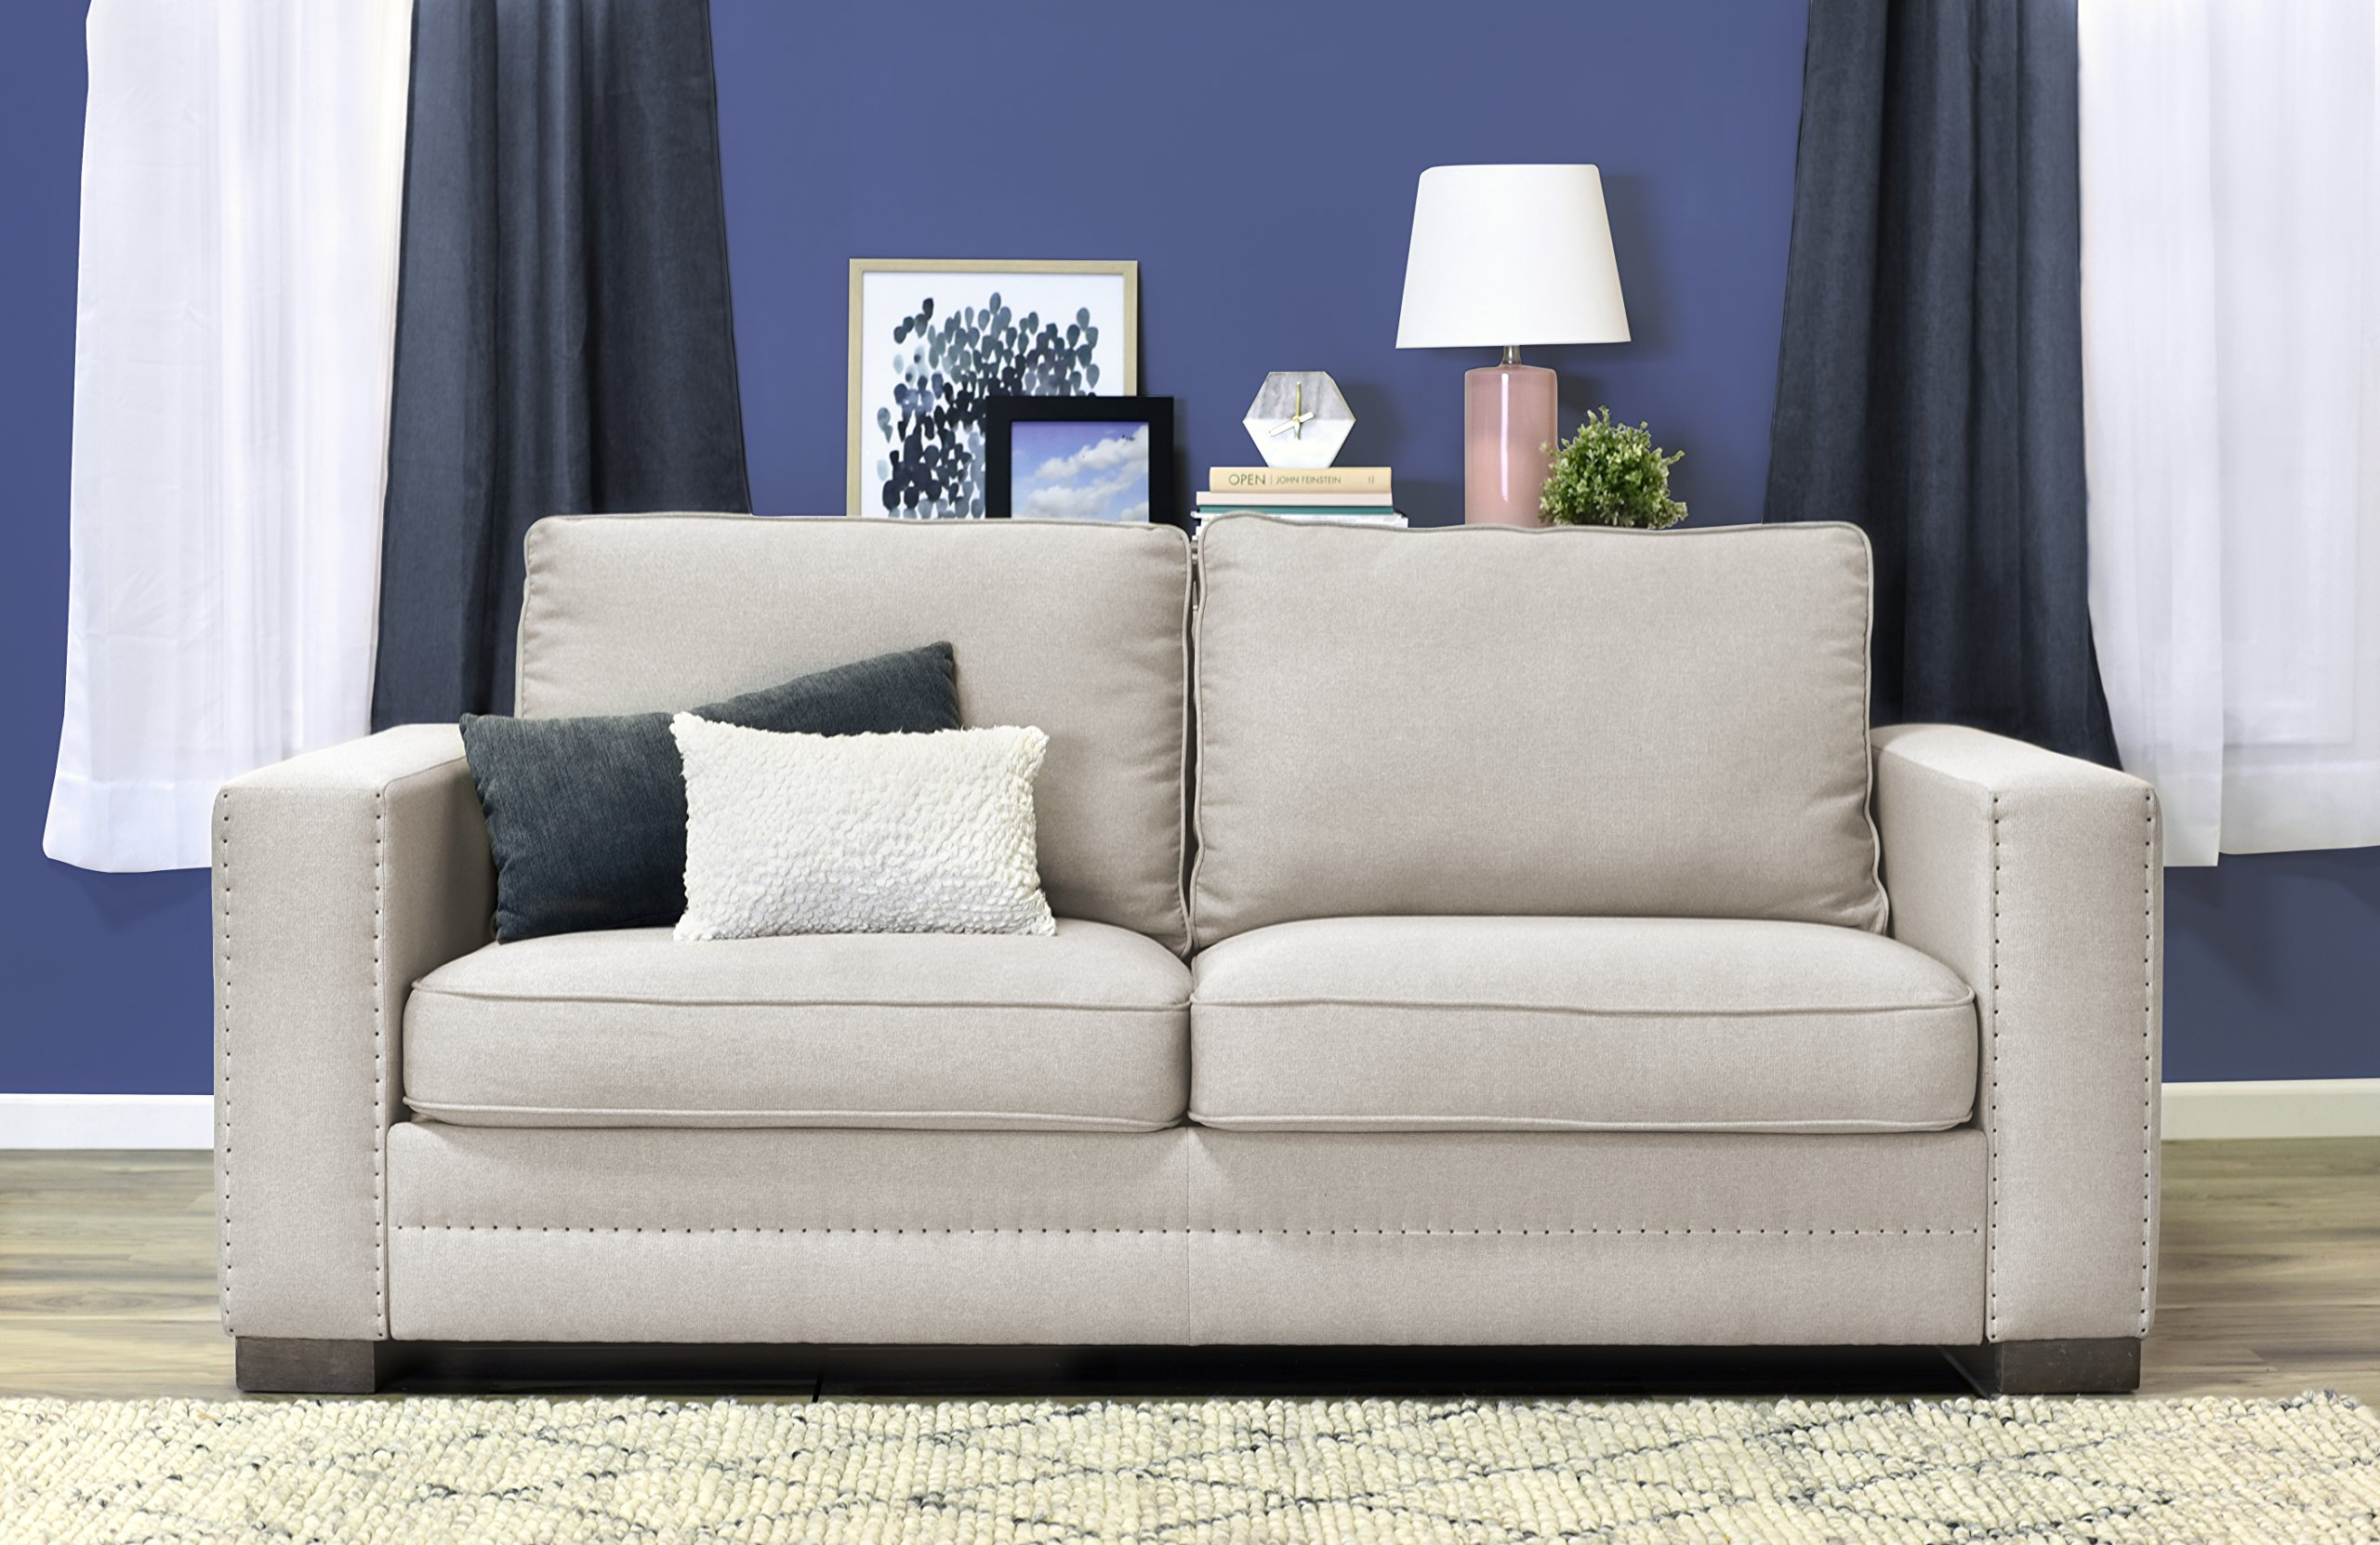 Serta Hemsley 81'' Sofa in Everyday Beige by Serta